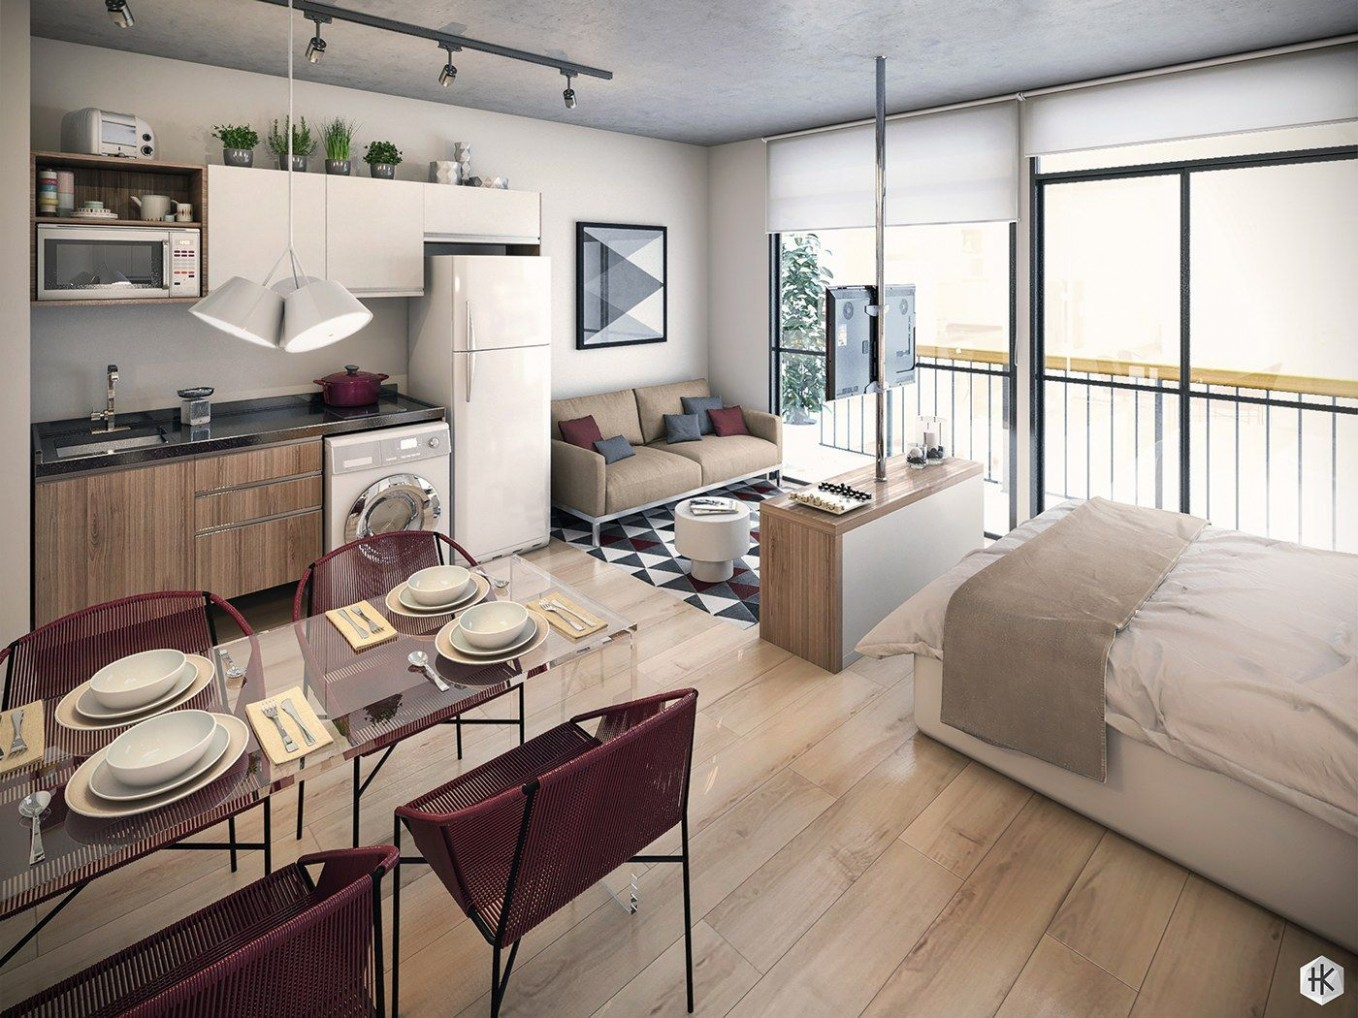 12 Small Studio Apartments With Beautiful Design  Apartment  - Apartment Design Pictures